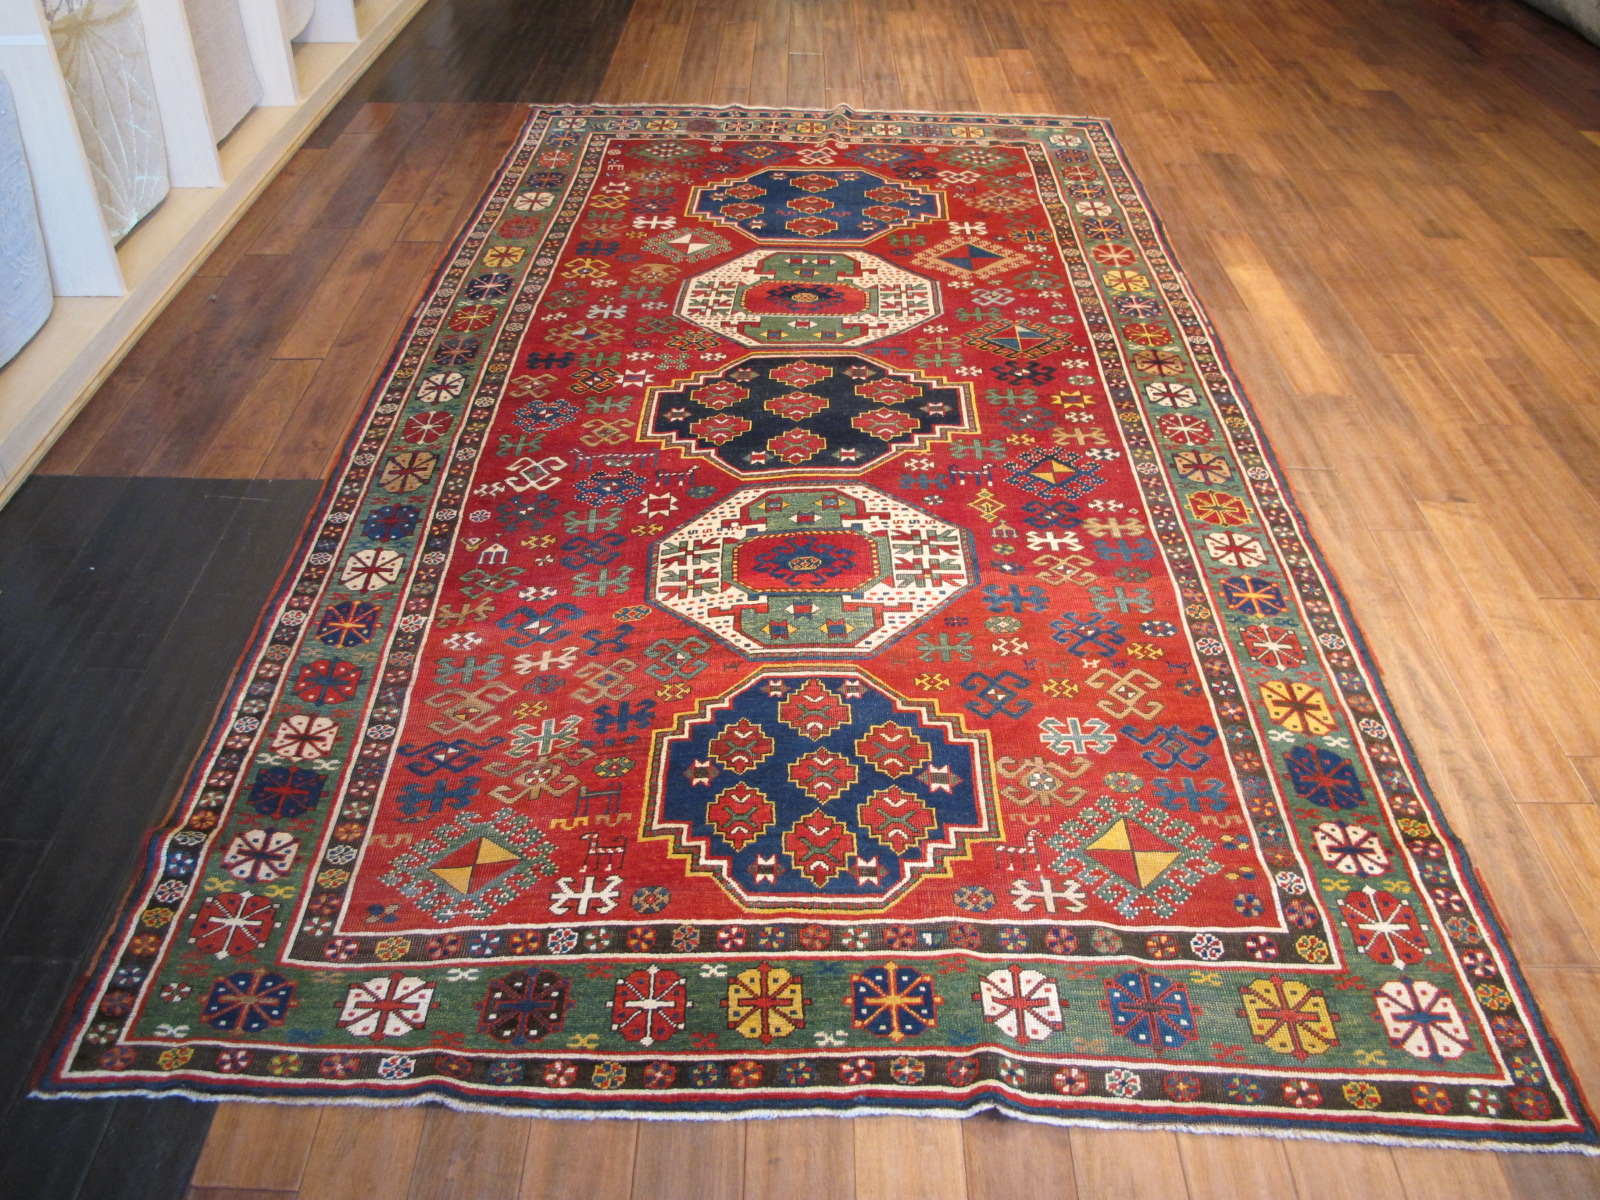 12989 antique Caucasian Kazak rug 6,2x11,4